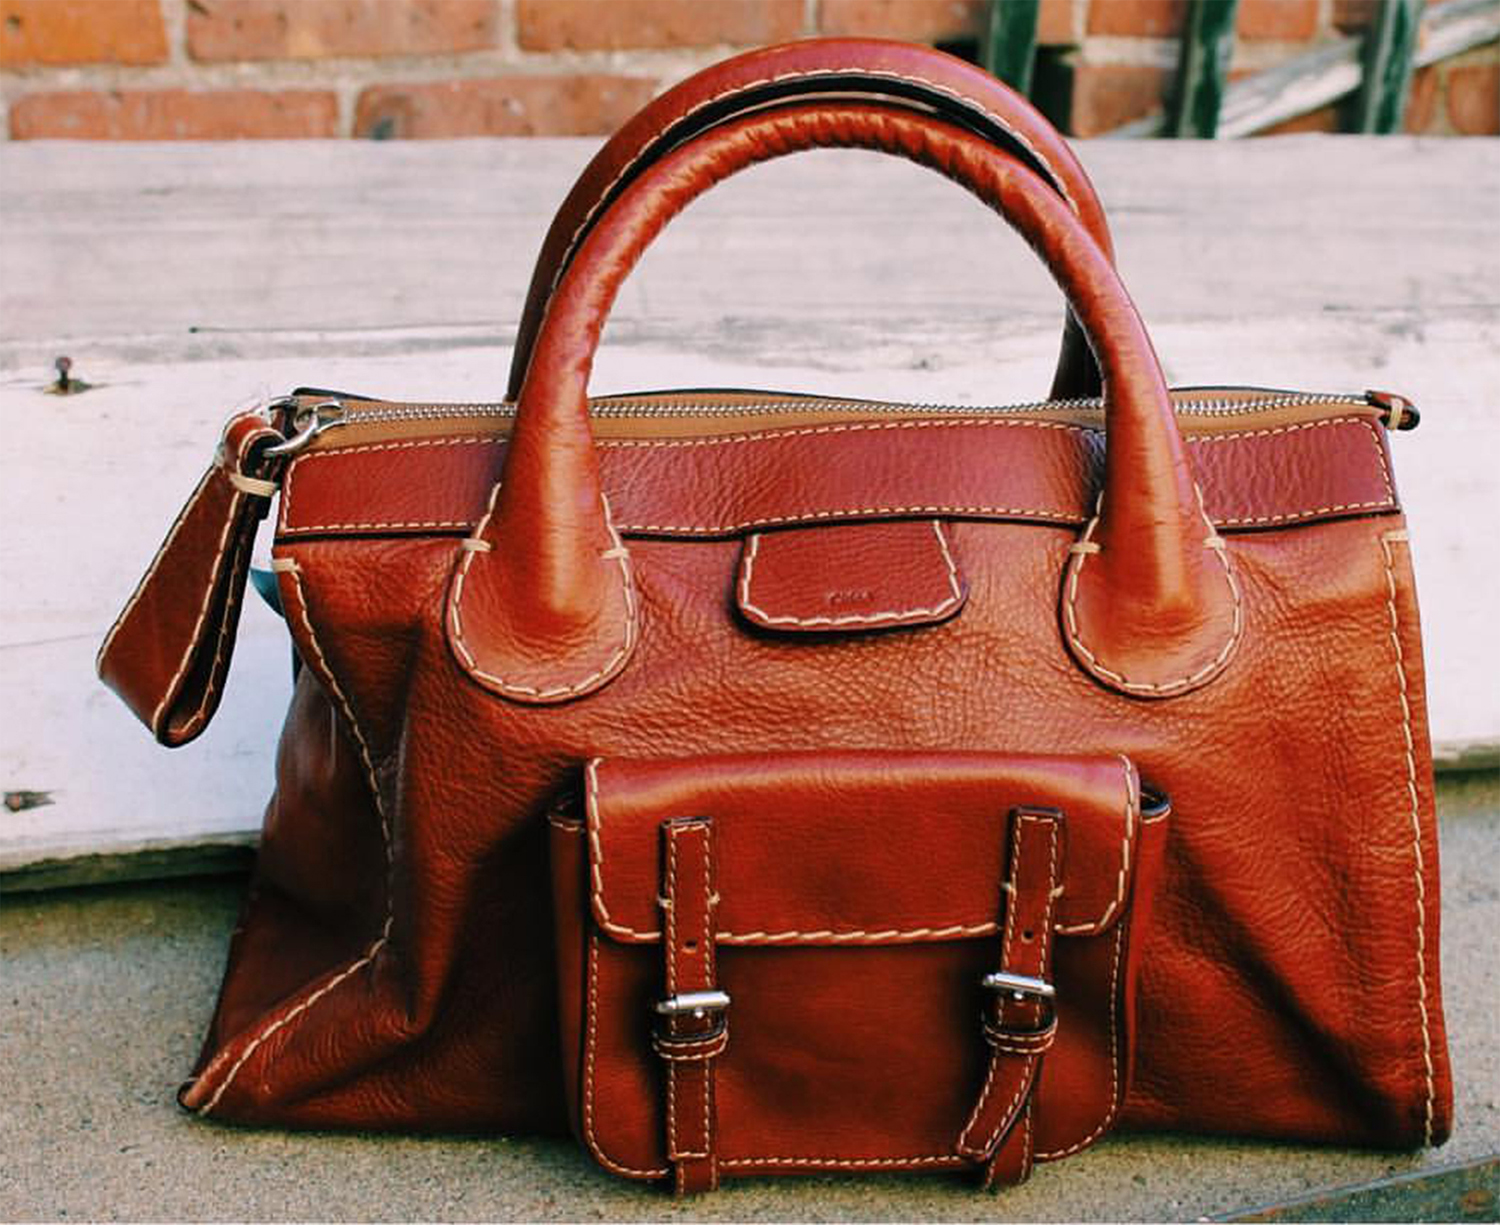 Luxurious Bags We All Love! — Common Threads